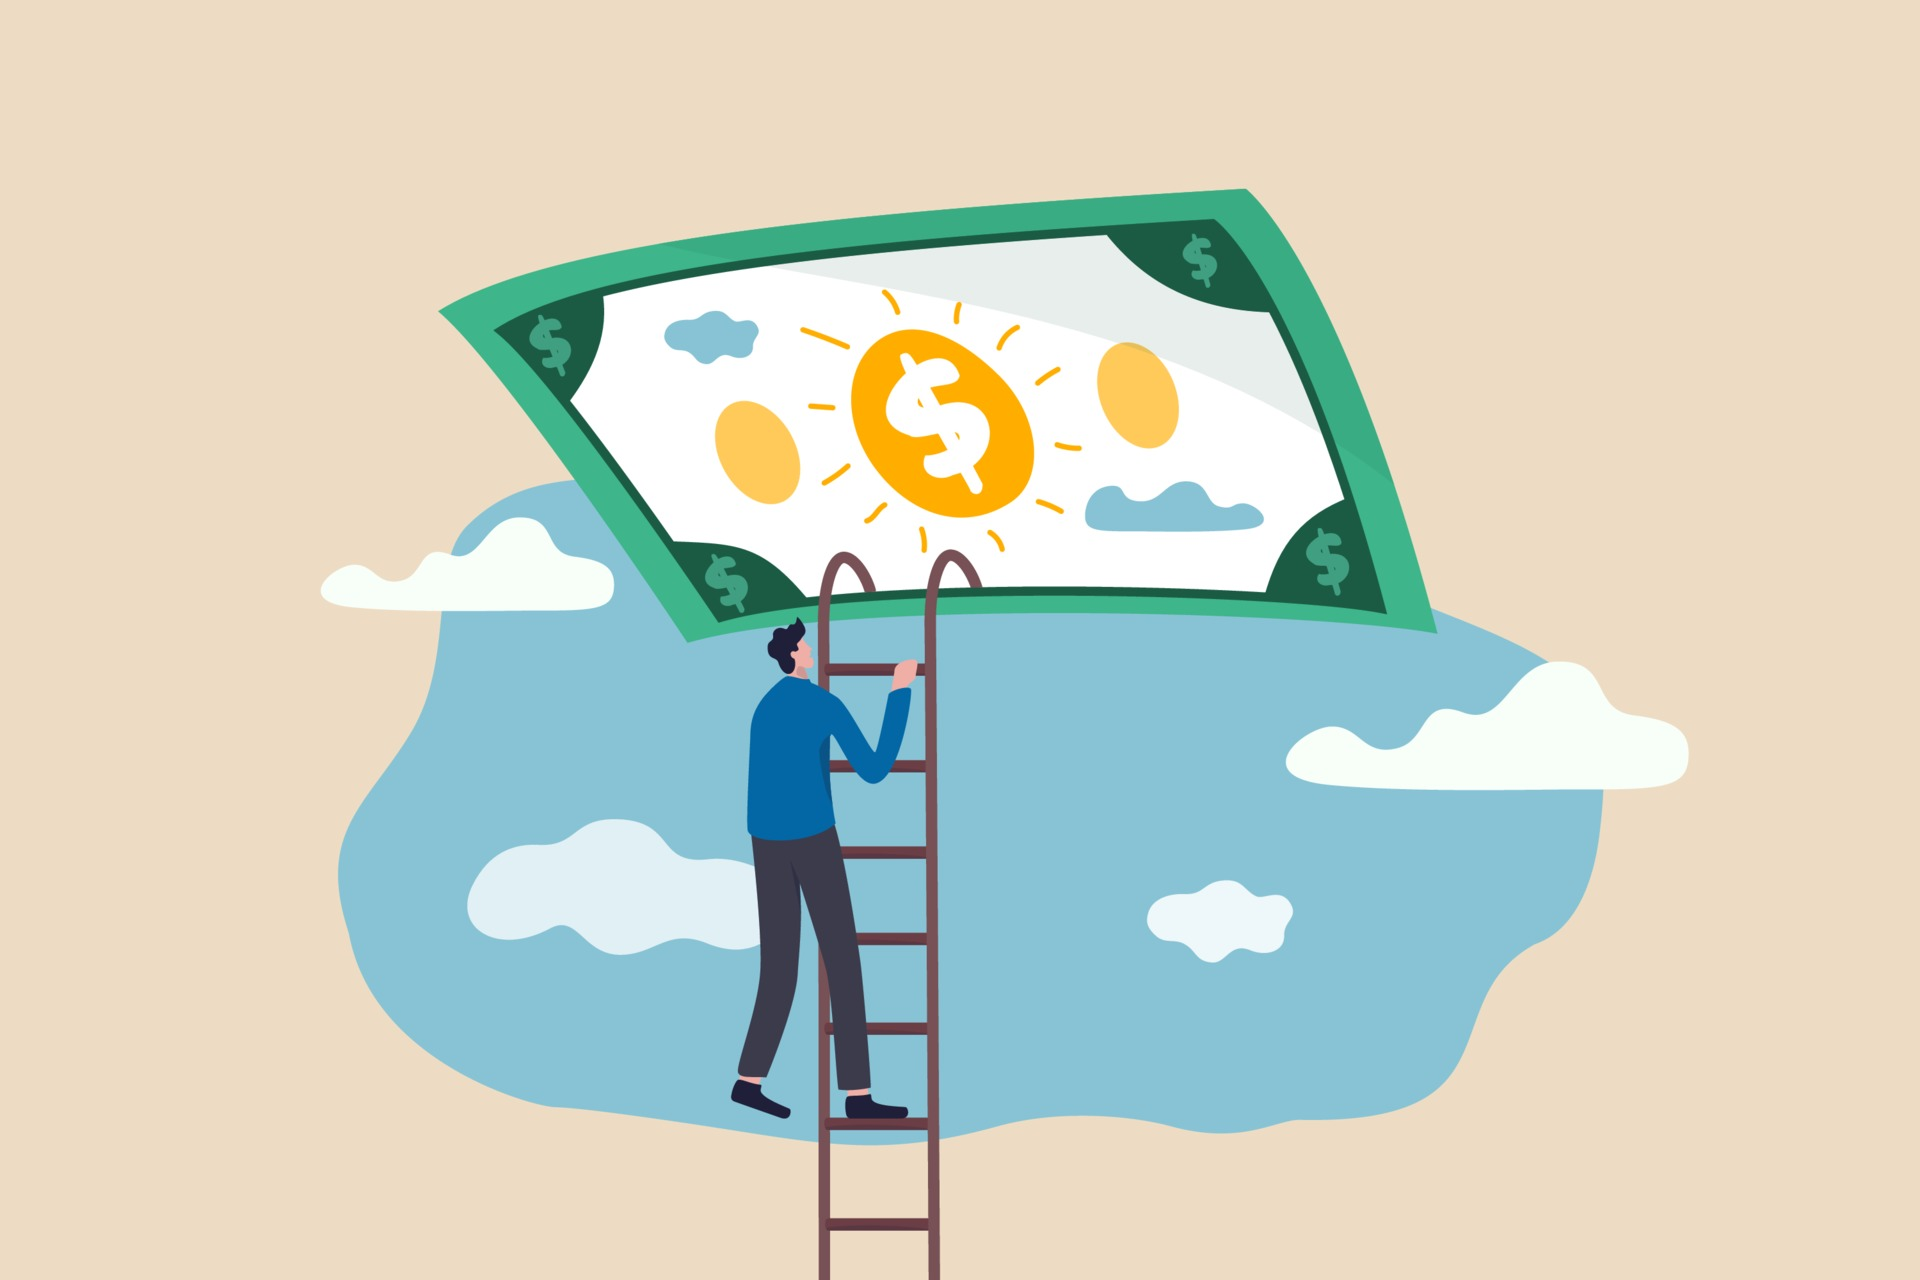 Ladder of success in financial freedom concept 2116604 Vector Art at Vecteezy